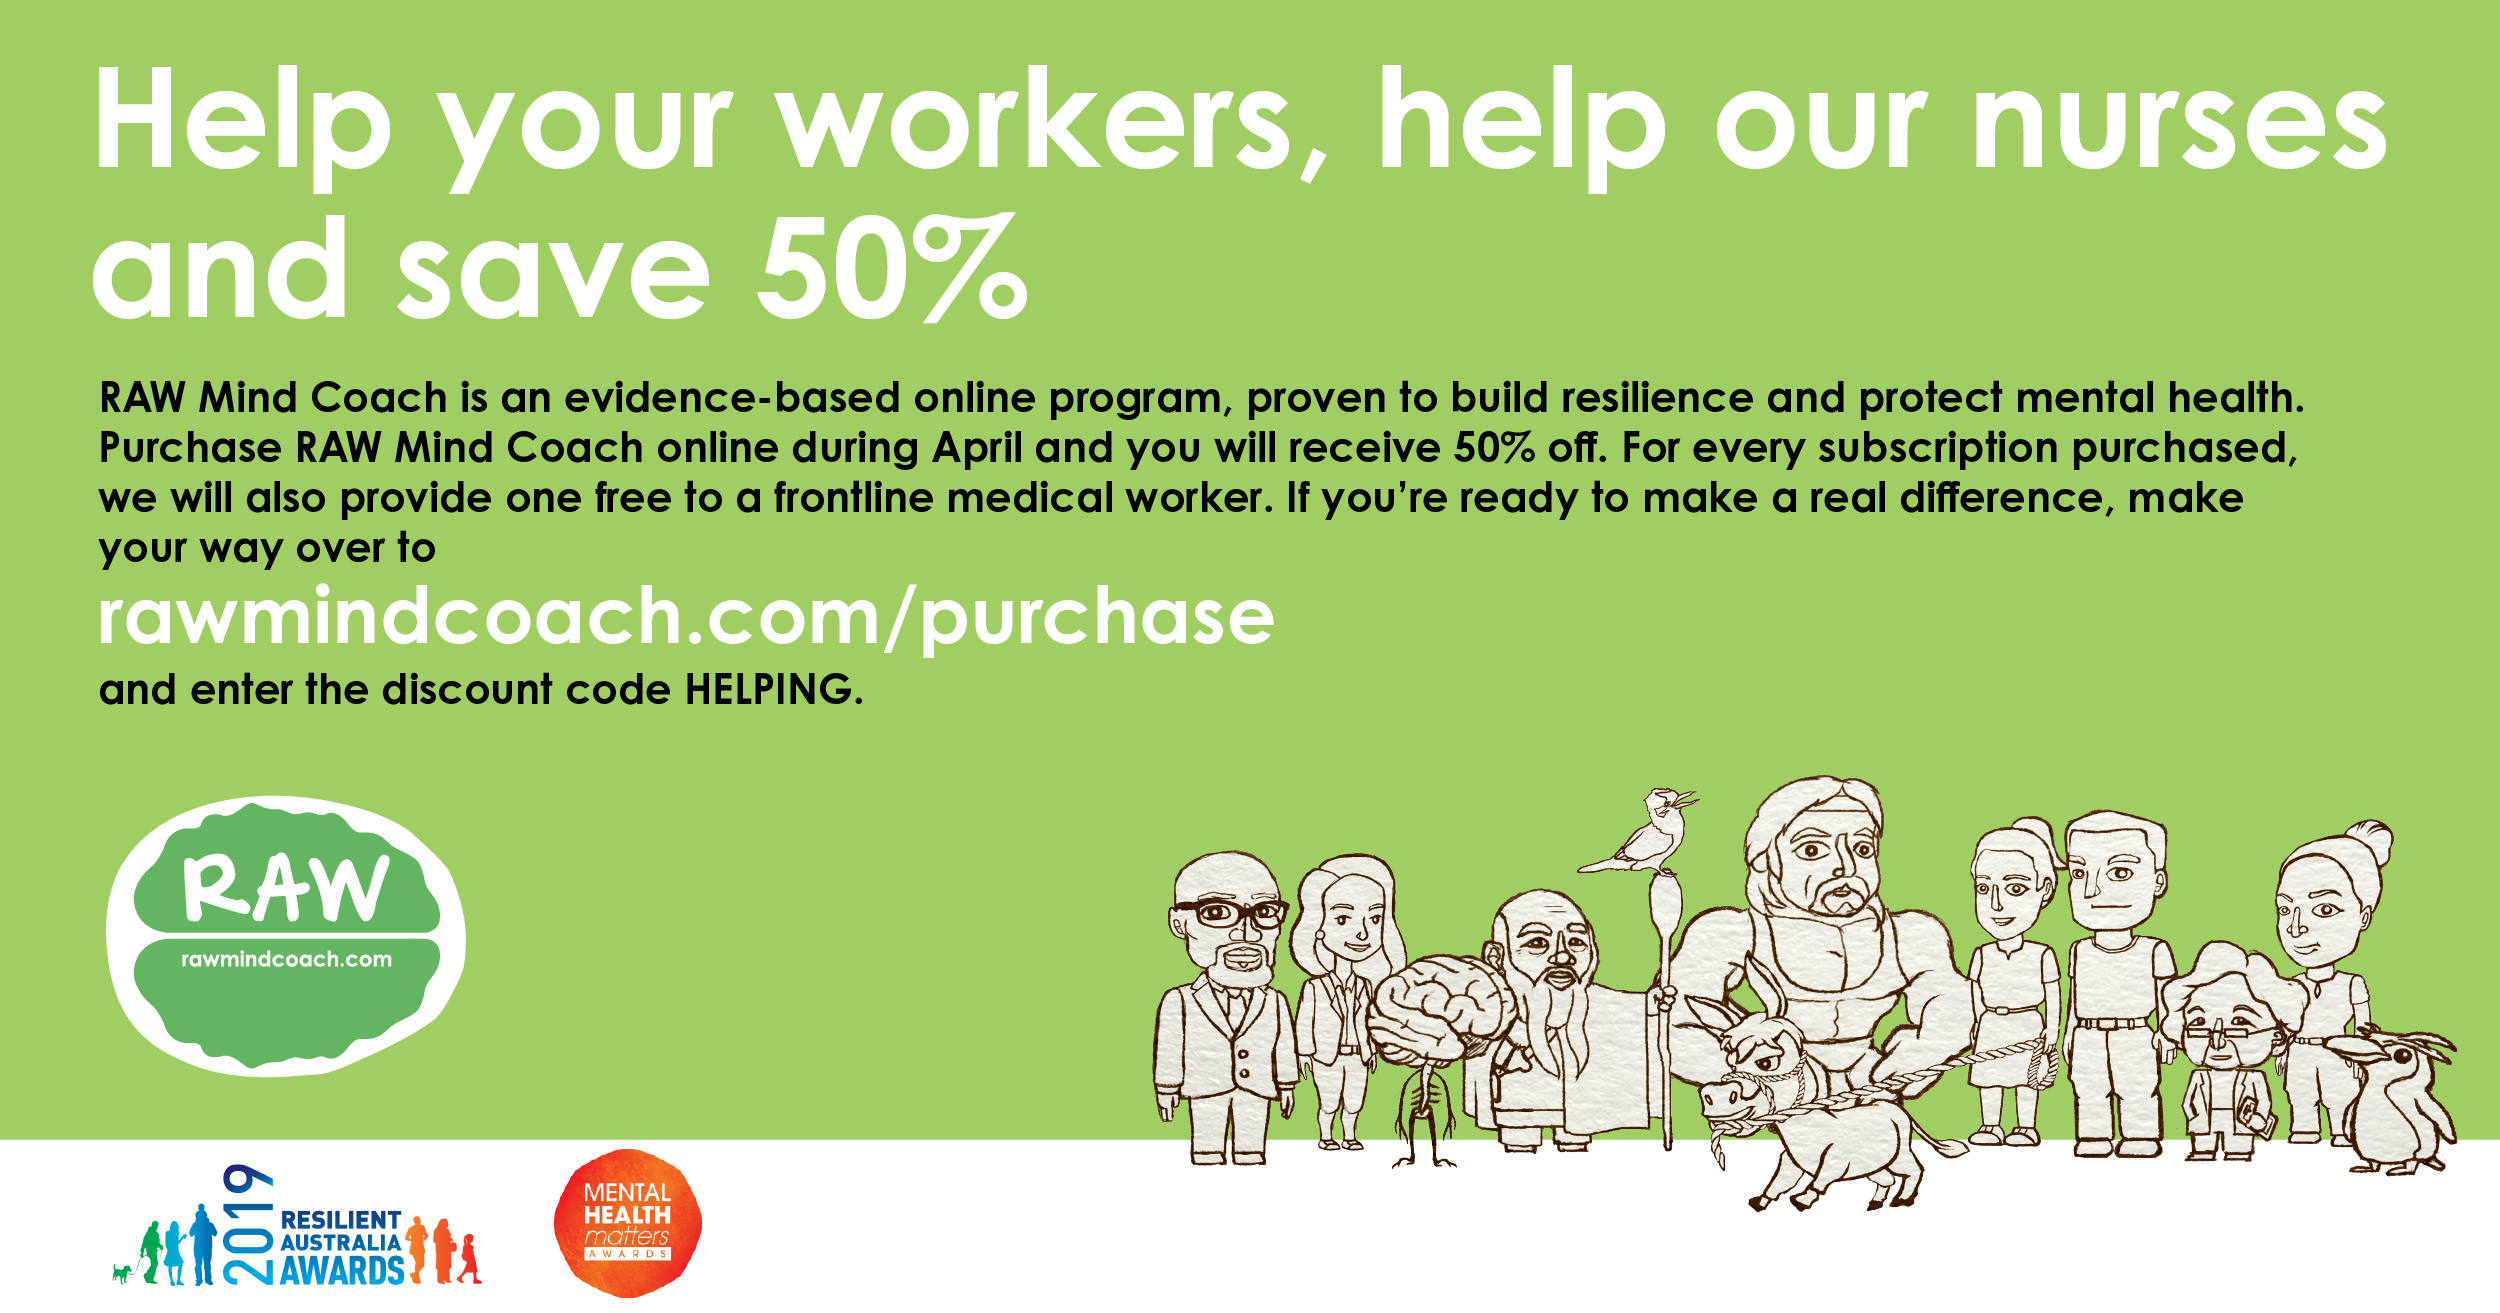 Help your workers, help our nurses and save 50%